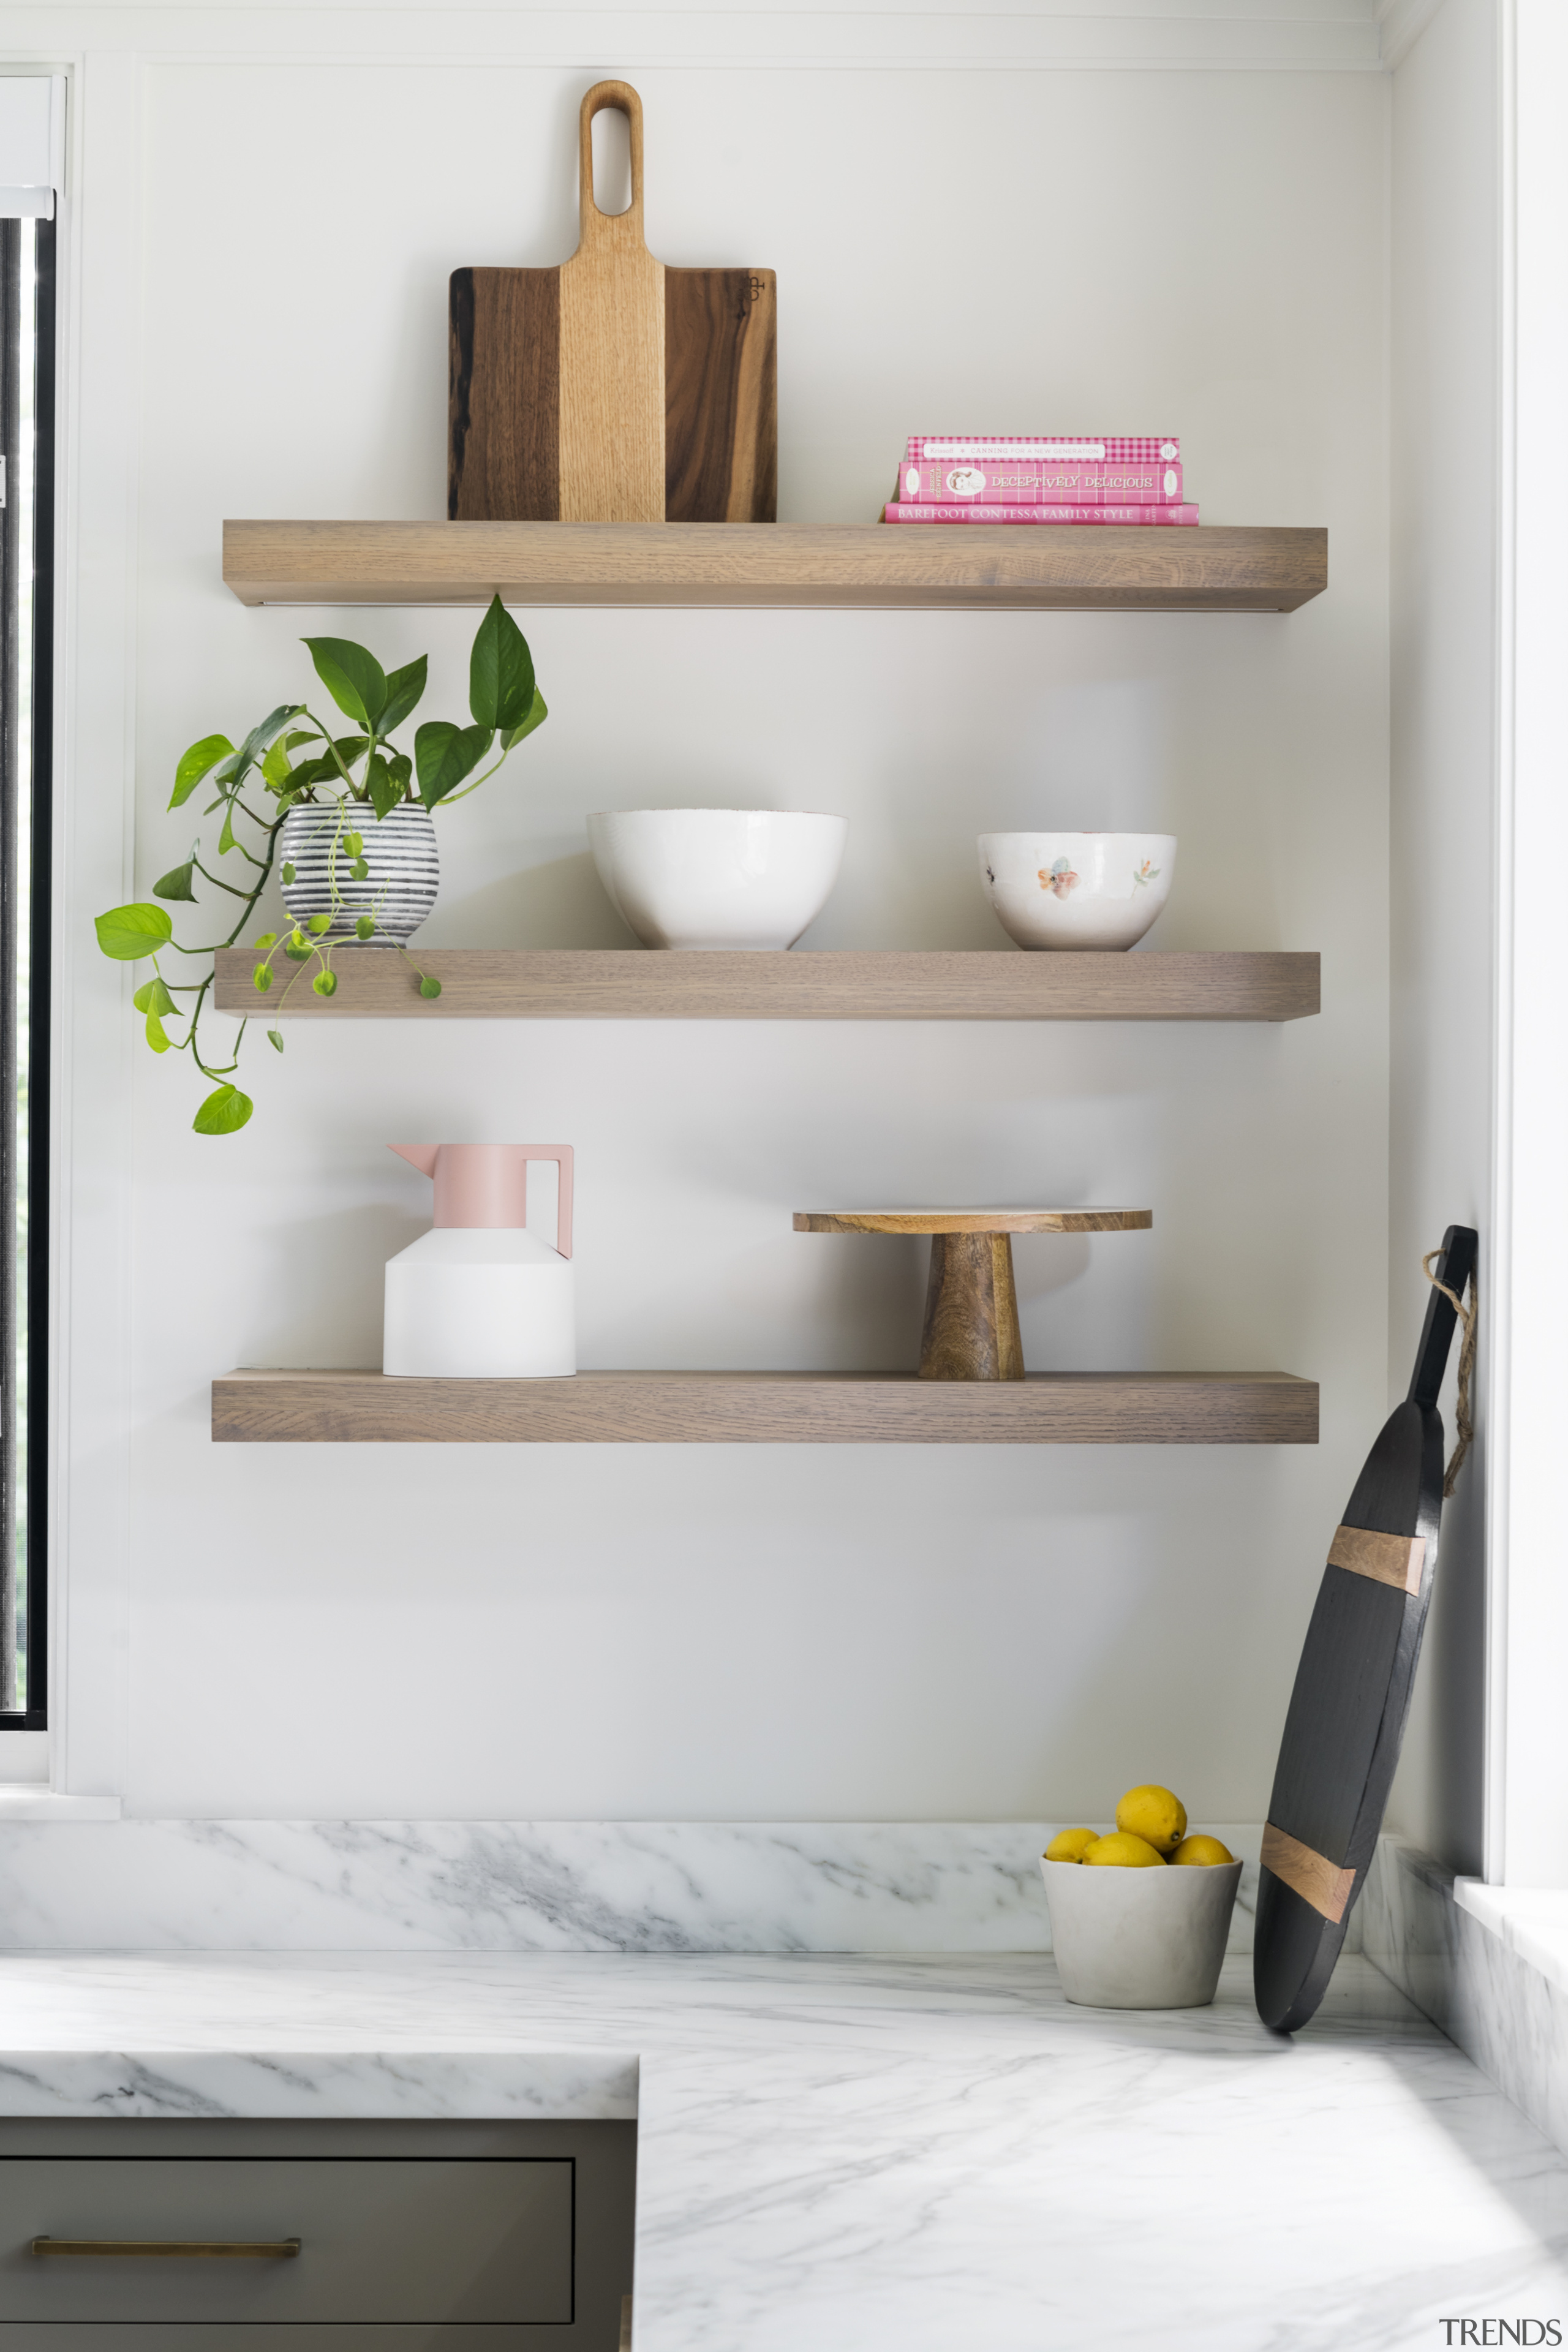 Open oak display shelving contributes to the light